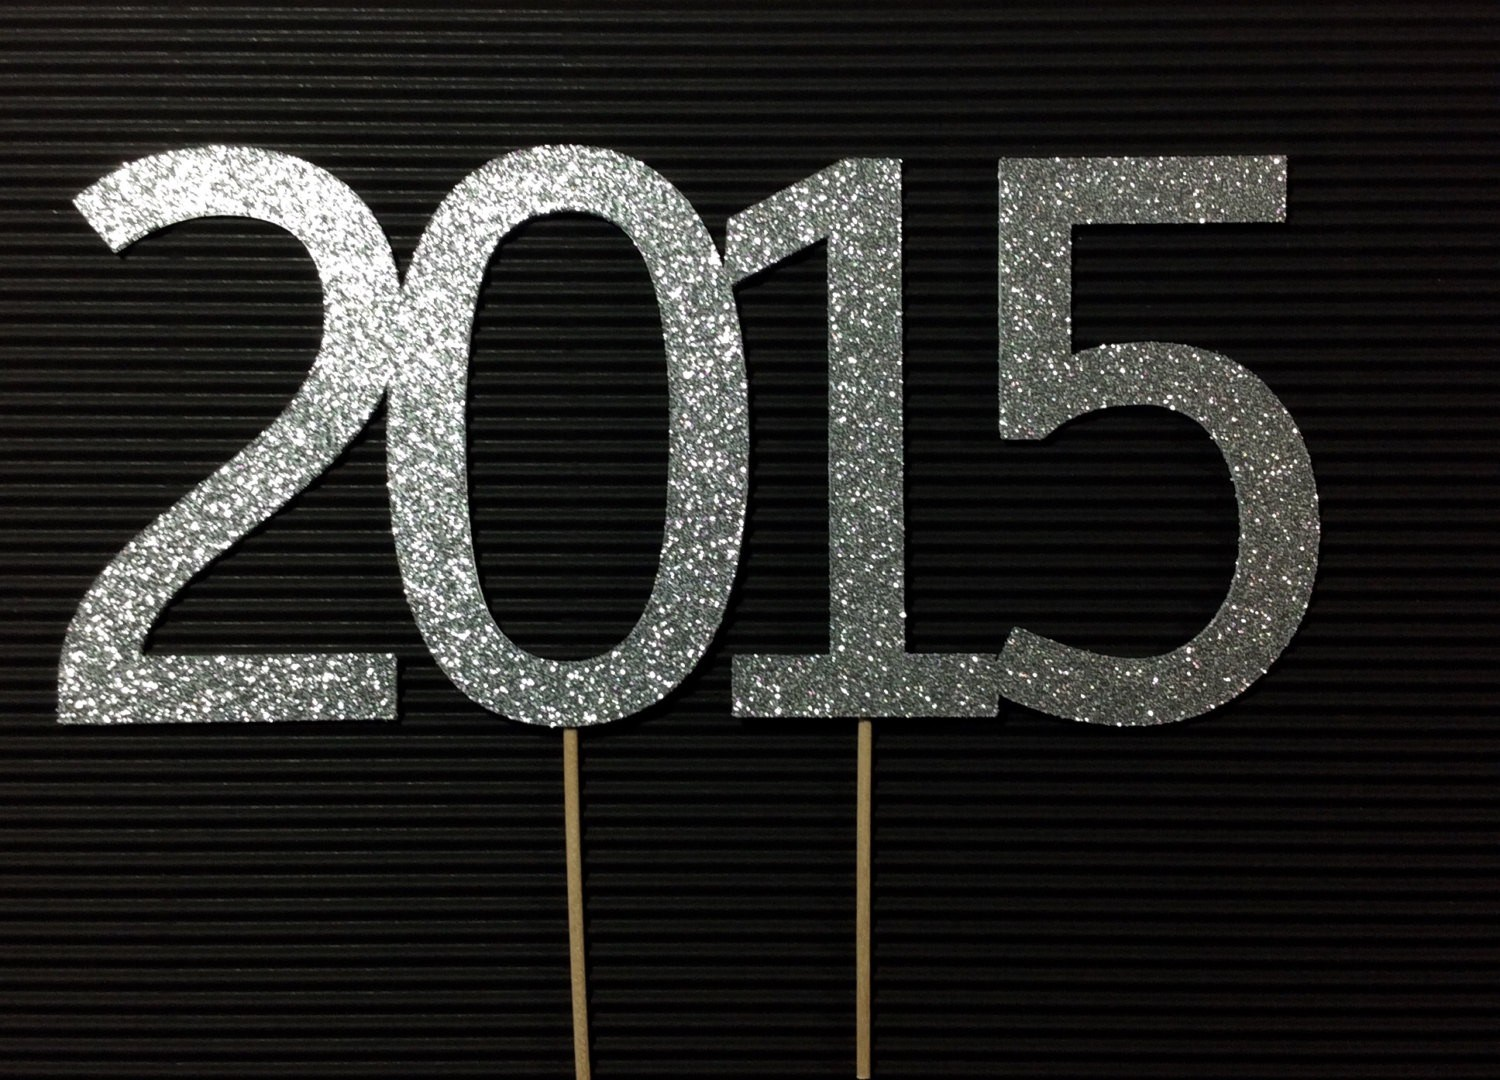 2015-silver-glitter-cake-topper-new-years-2015-new-year-ideas-paper-goods-cake-topper-f62902